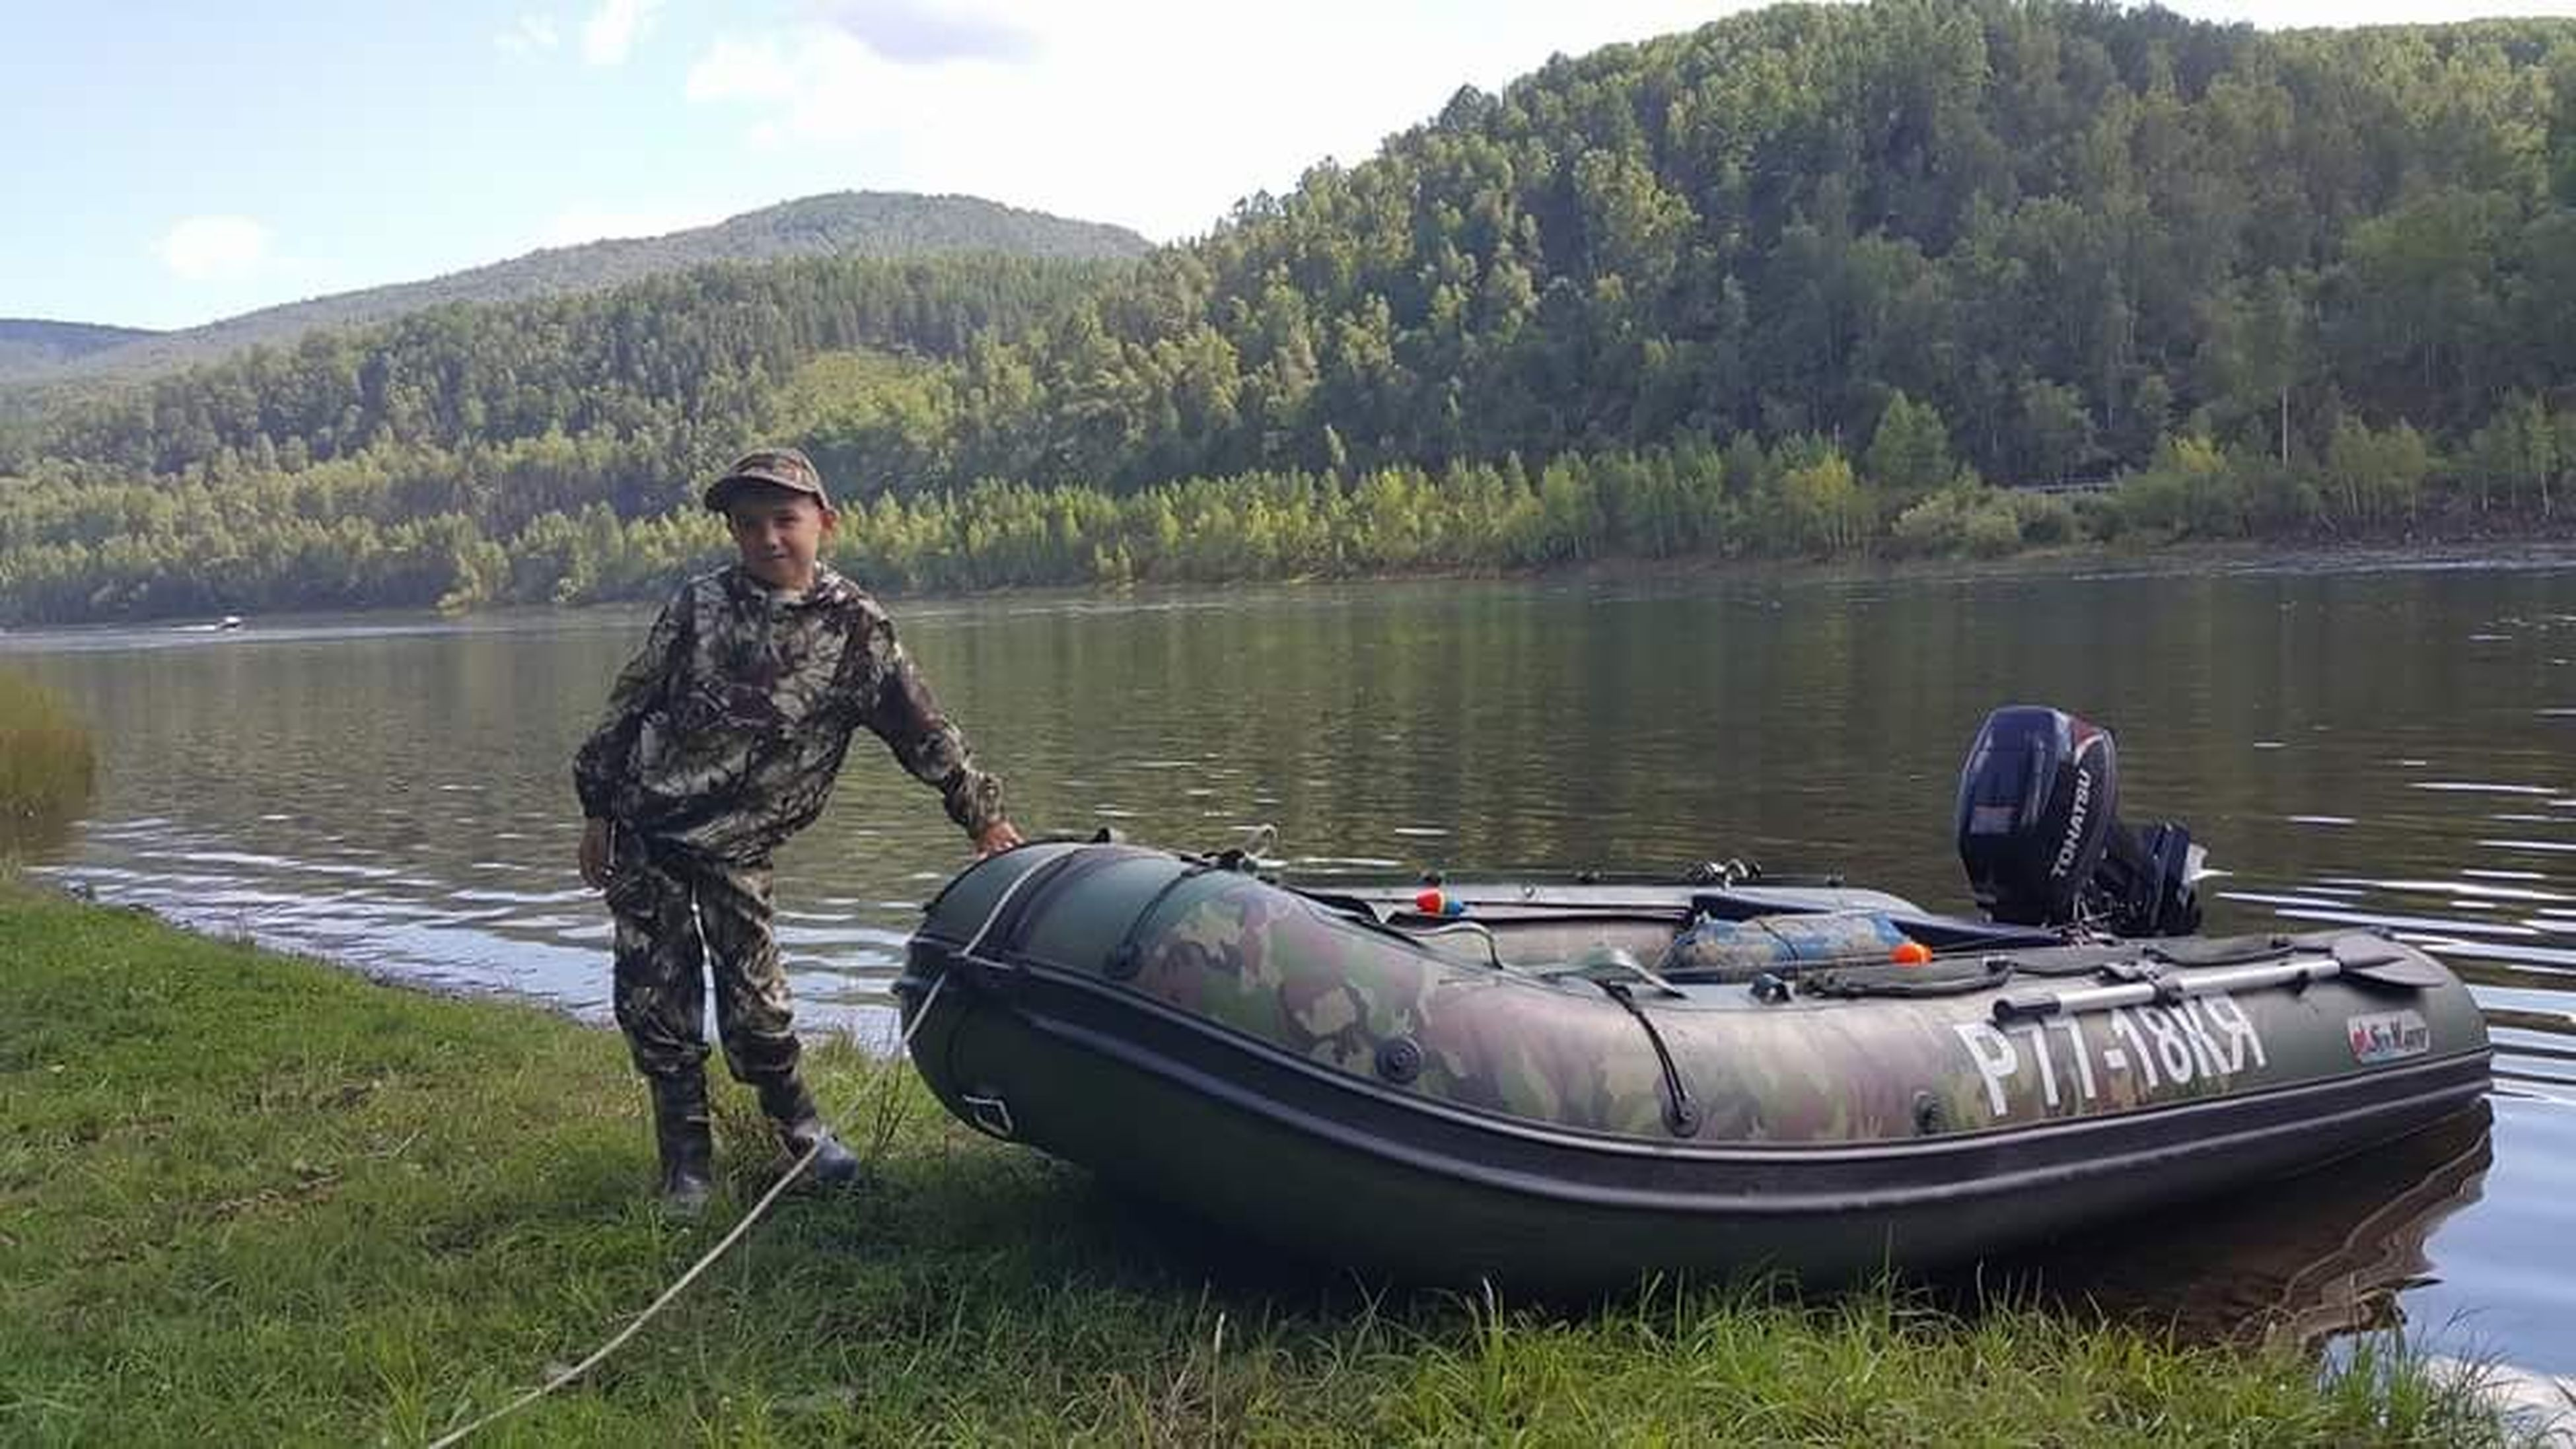 lake, real people, water, day, nature, standing, leisure activity, outdoors, nautical vessel, tree, transportation, lifestyles, one person, men, full length, looking at camera, sky, military uniform, beauty in nature, young adult, camouflage clothing, people